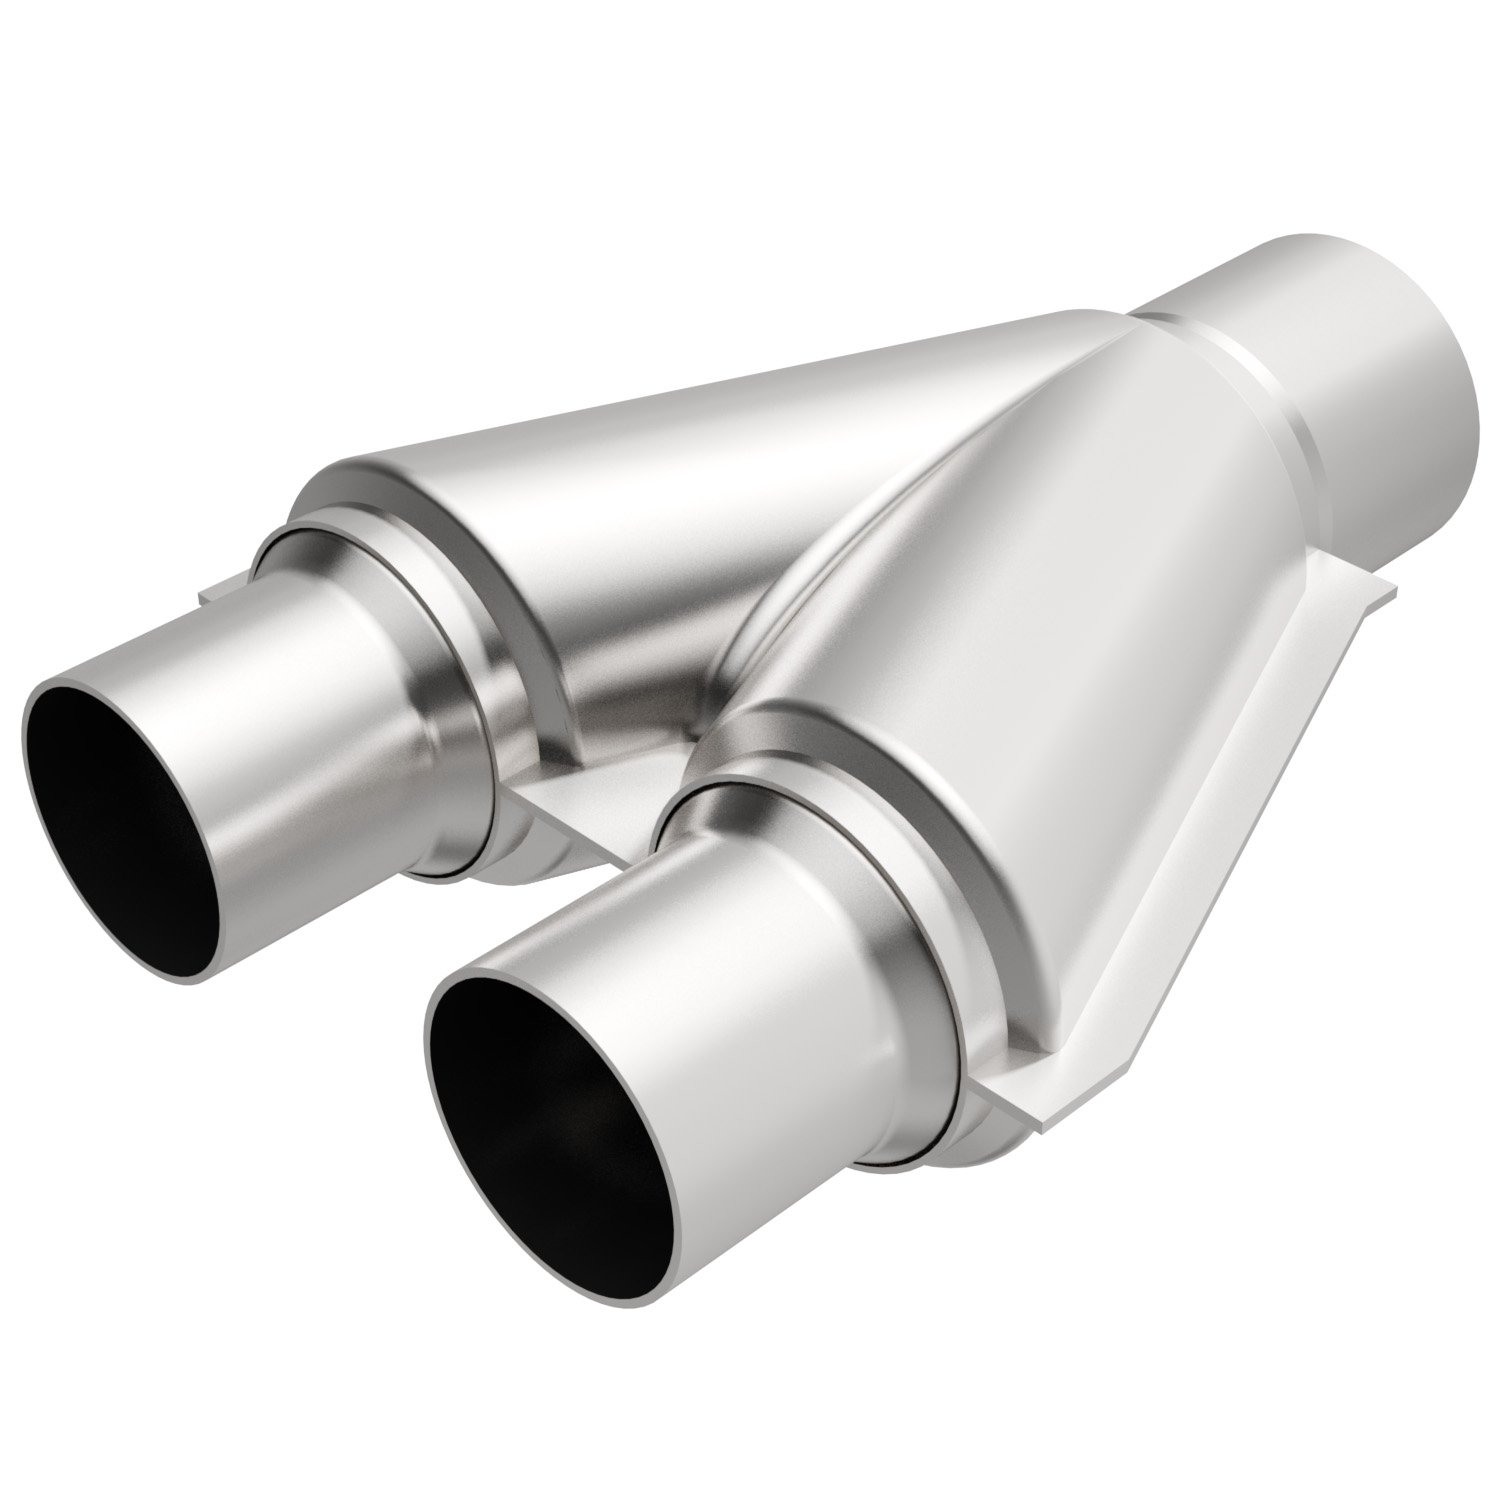 Magnaflow 10778 - Magnaflow Y, X, U Exhaust Pipe Transitions